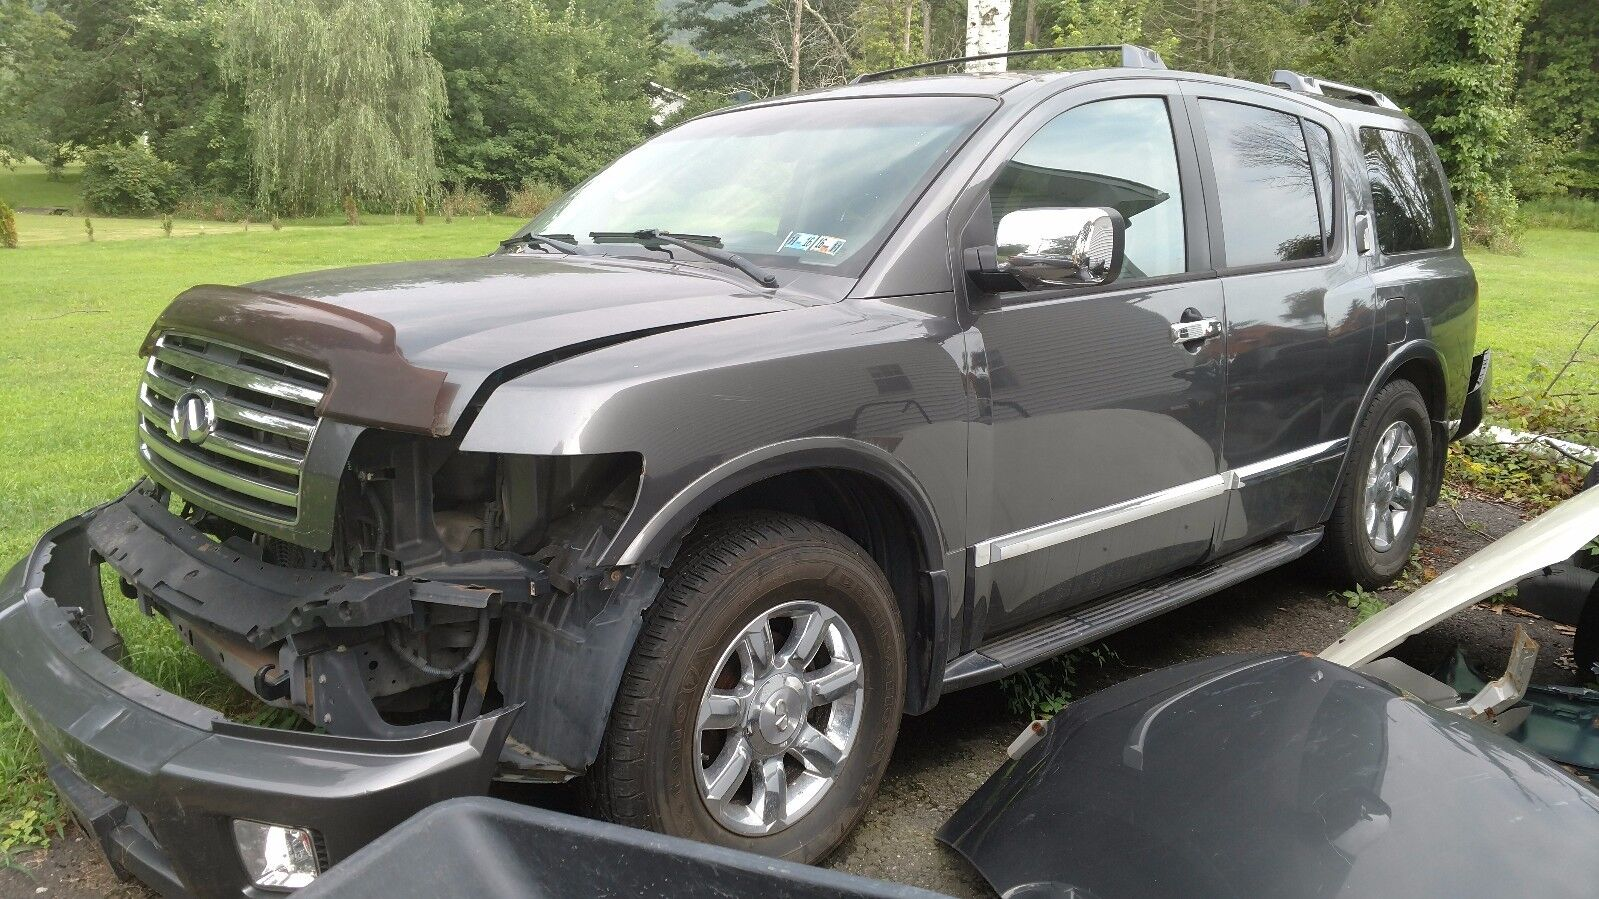 2005 Infiniti QX56  05 QX56, damaged, PA Salvage Title - repair or use for parts